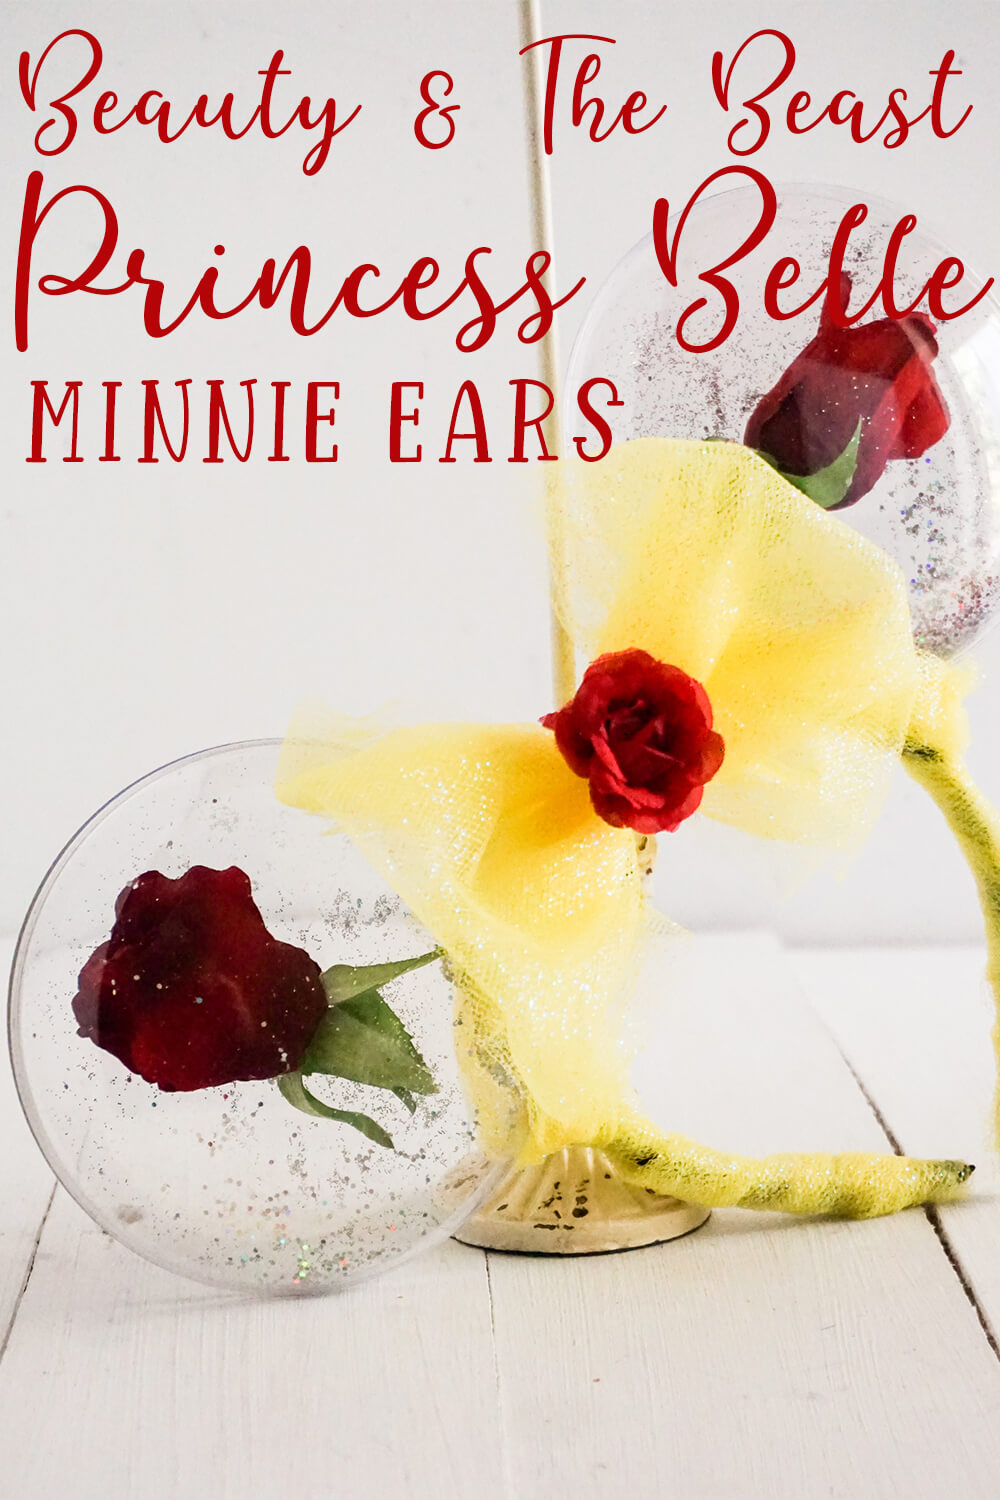 beauty and the beast mickey ears for disney with text which reads princess belle minnie ears